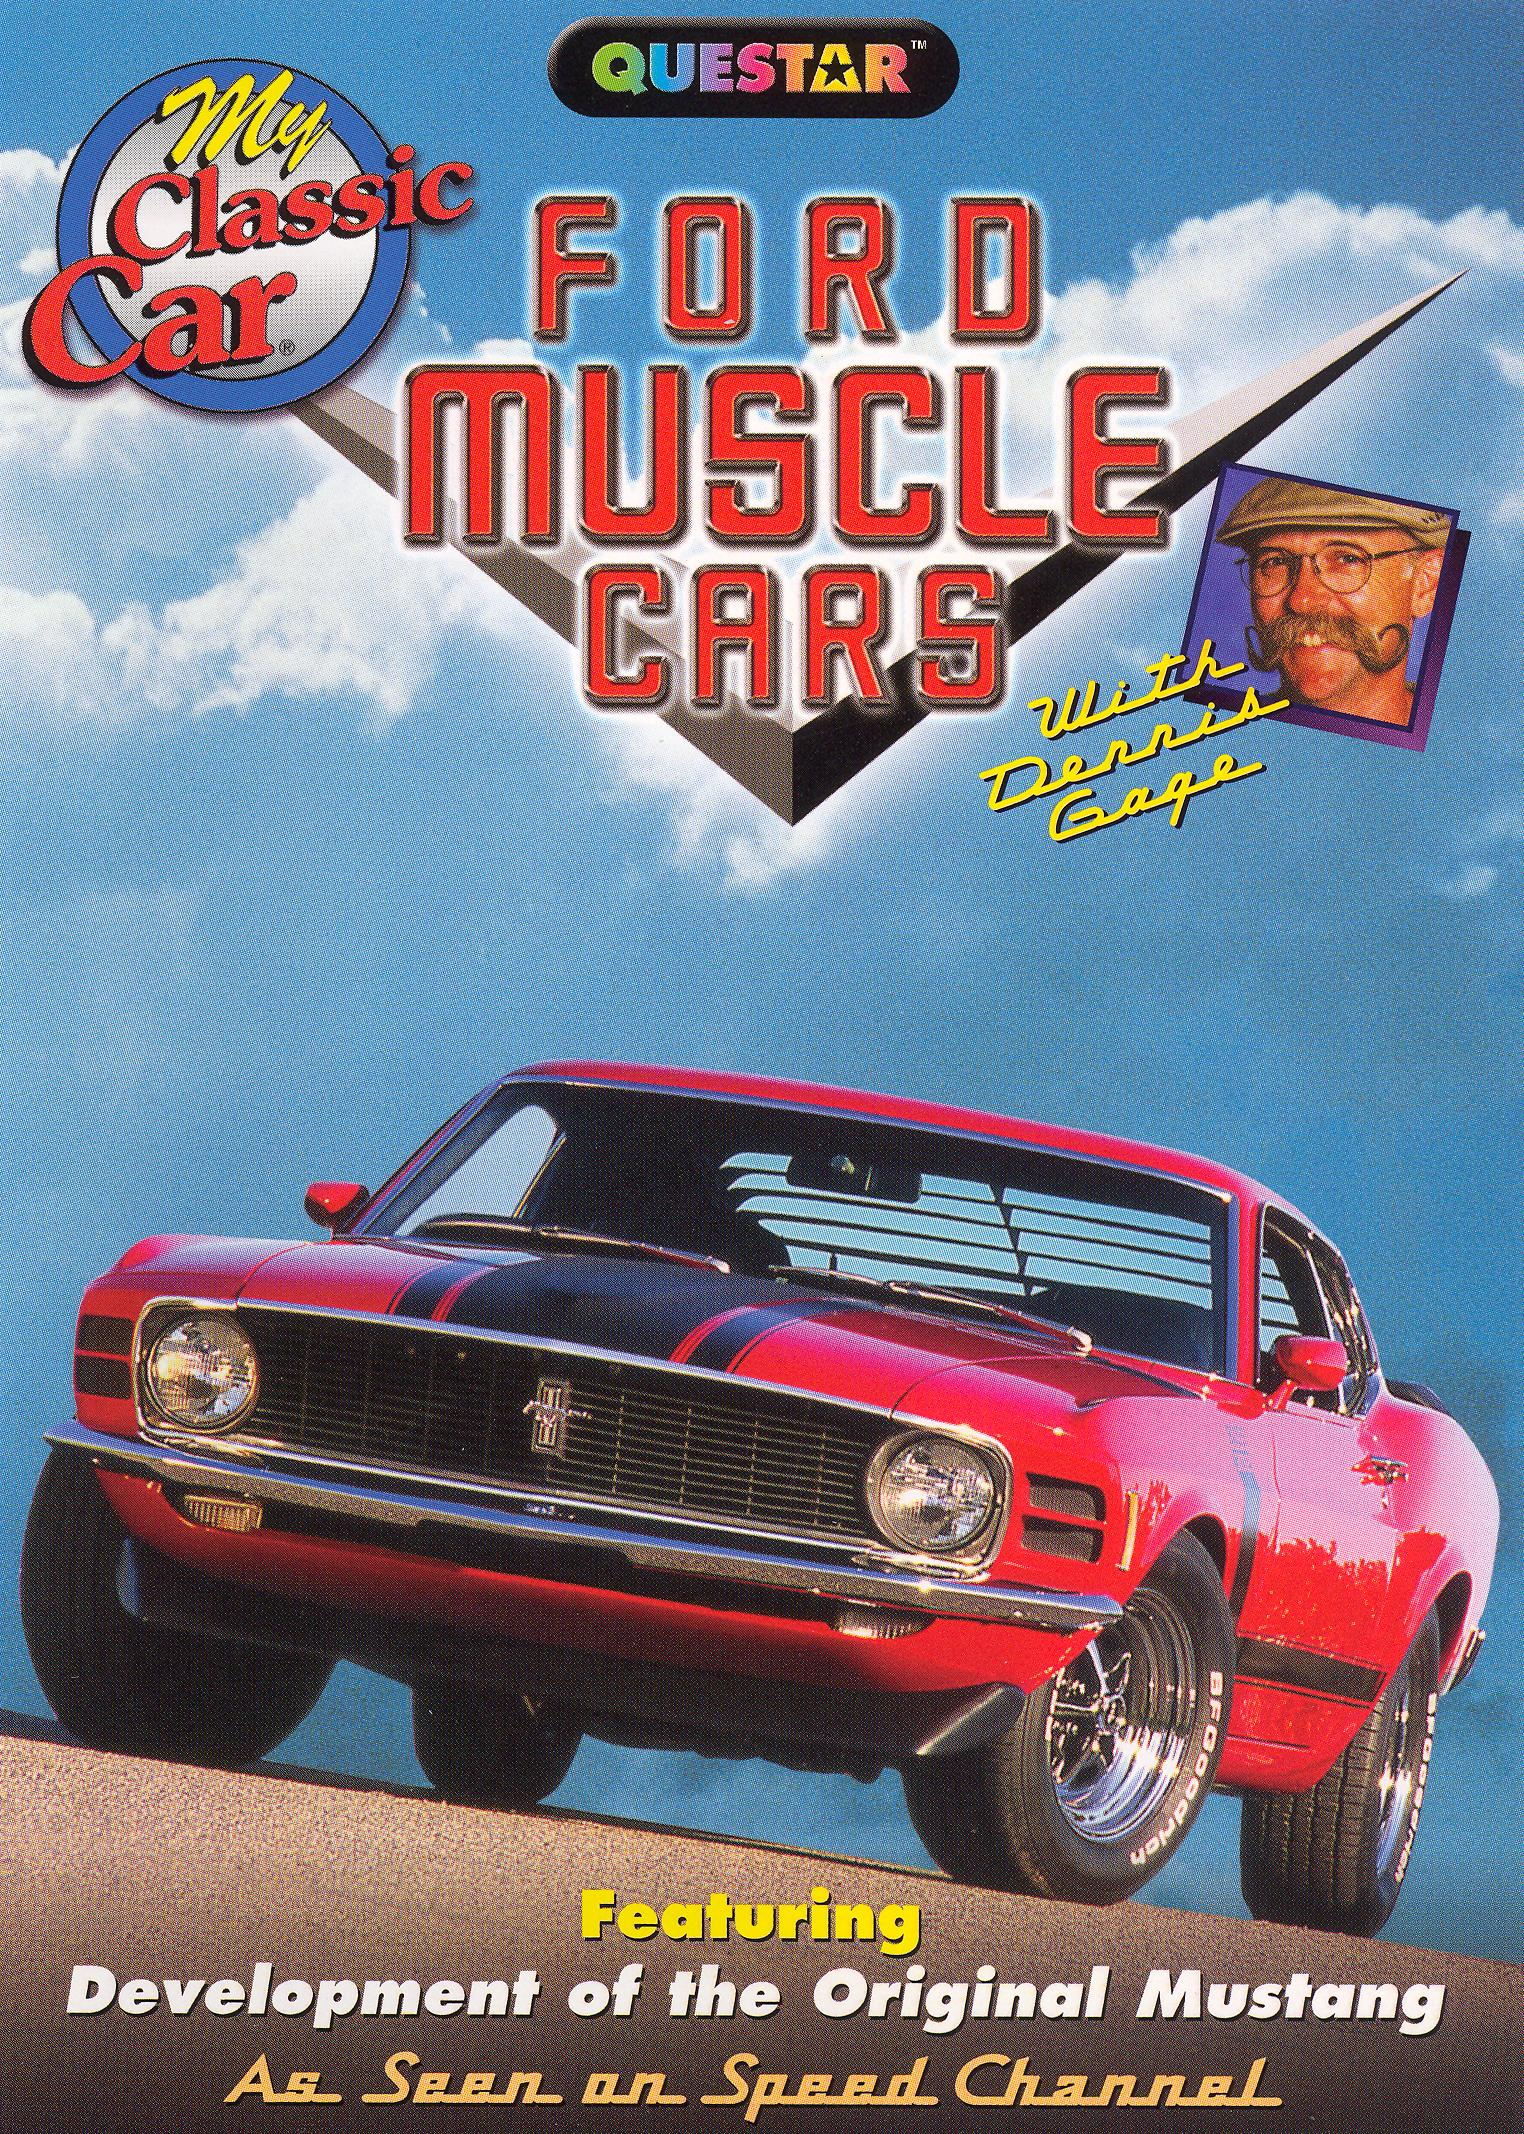 My Classic Car: Ford Muscle Cars